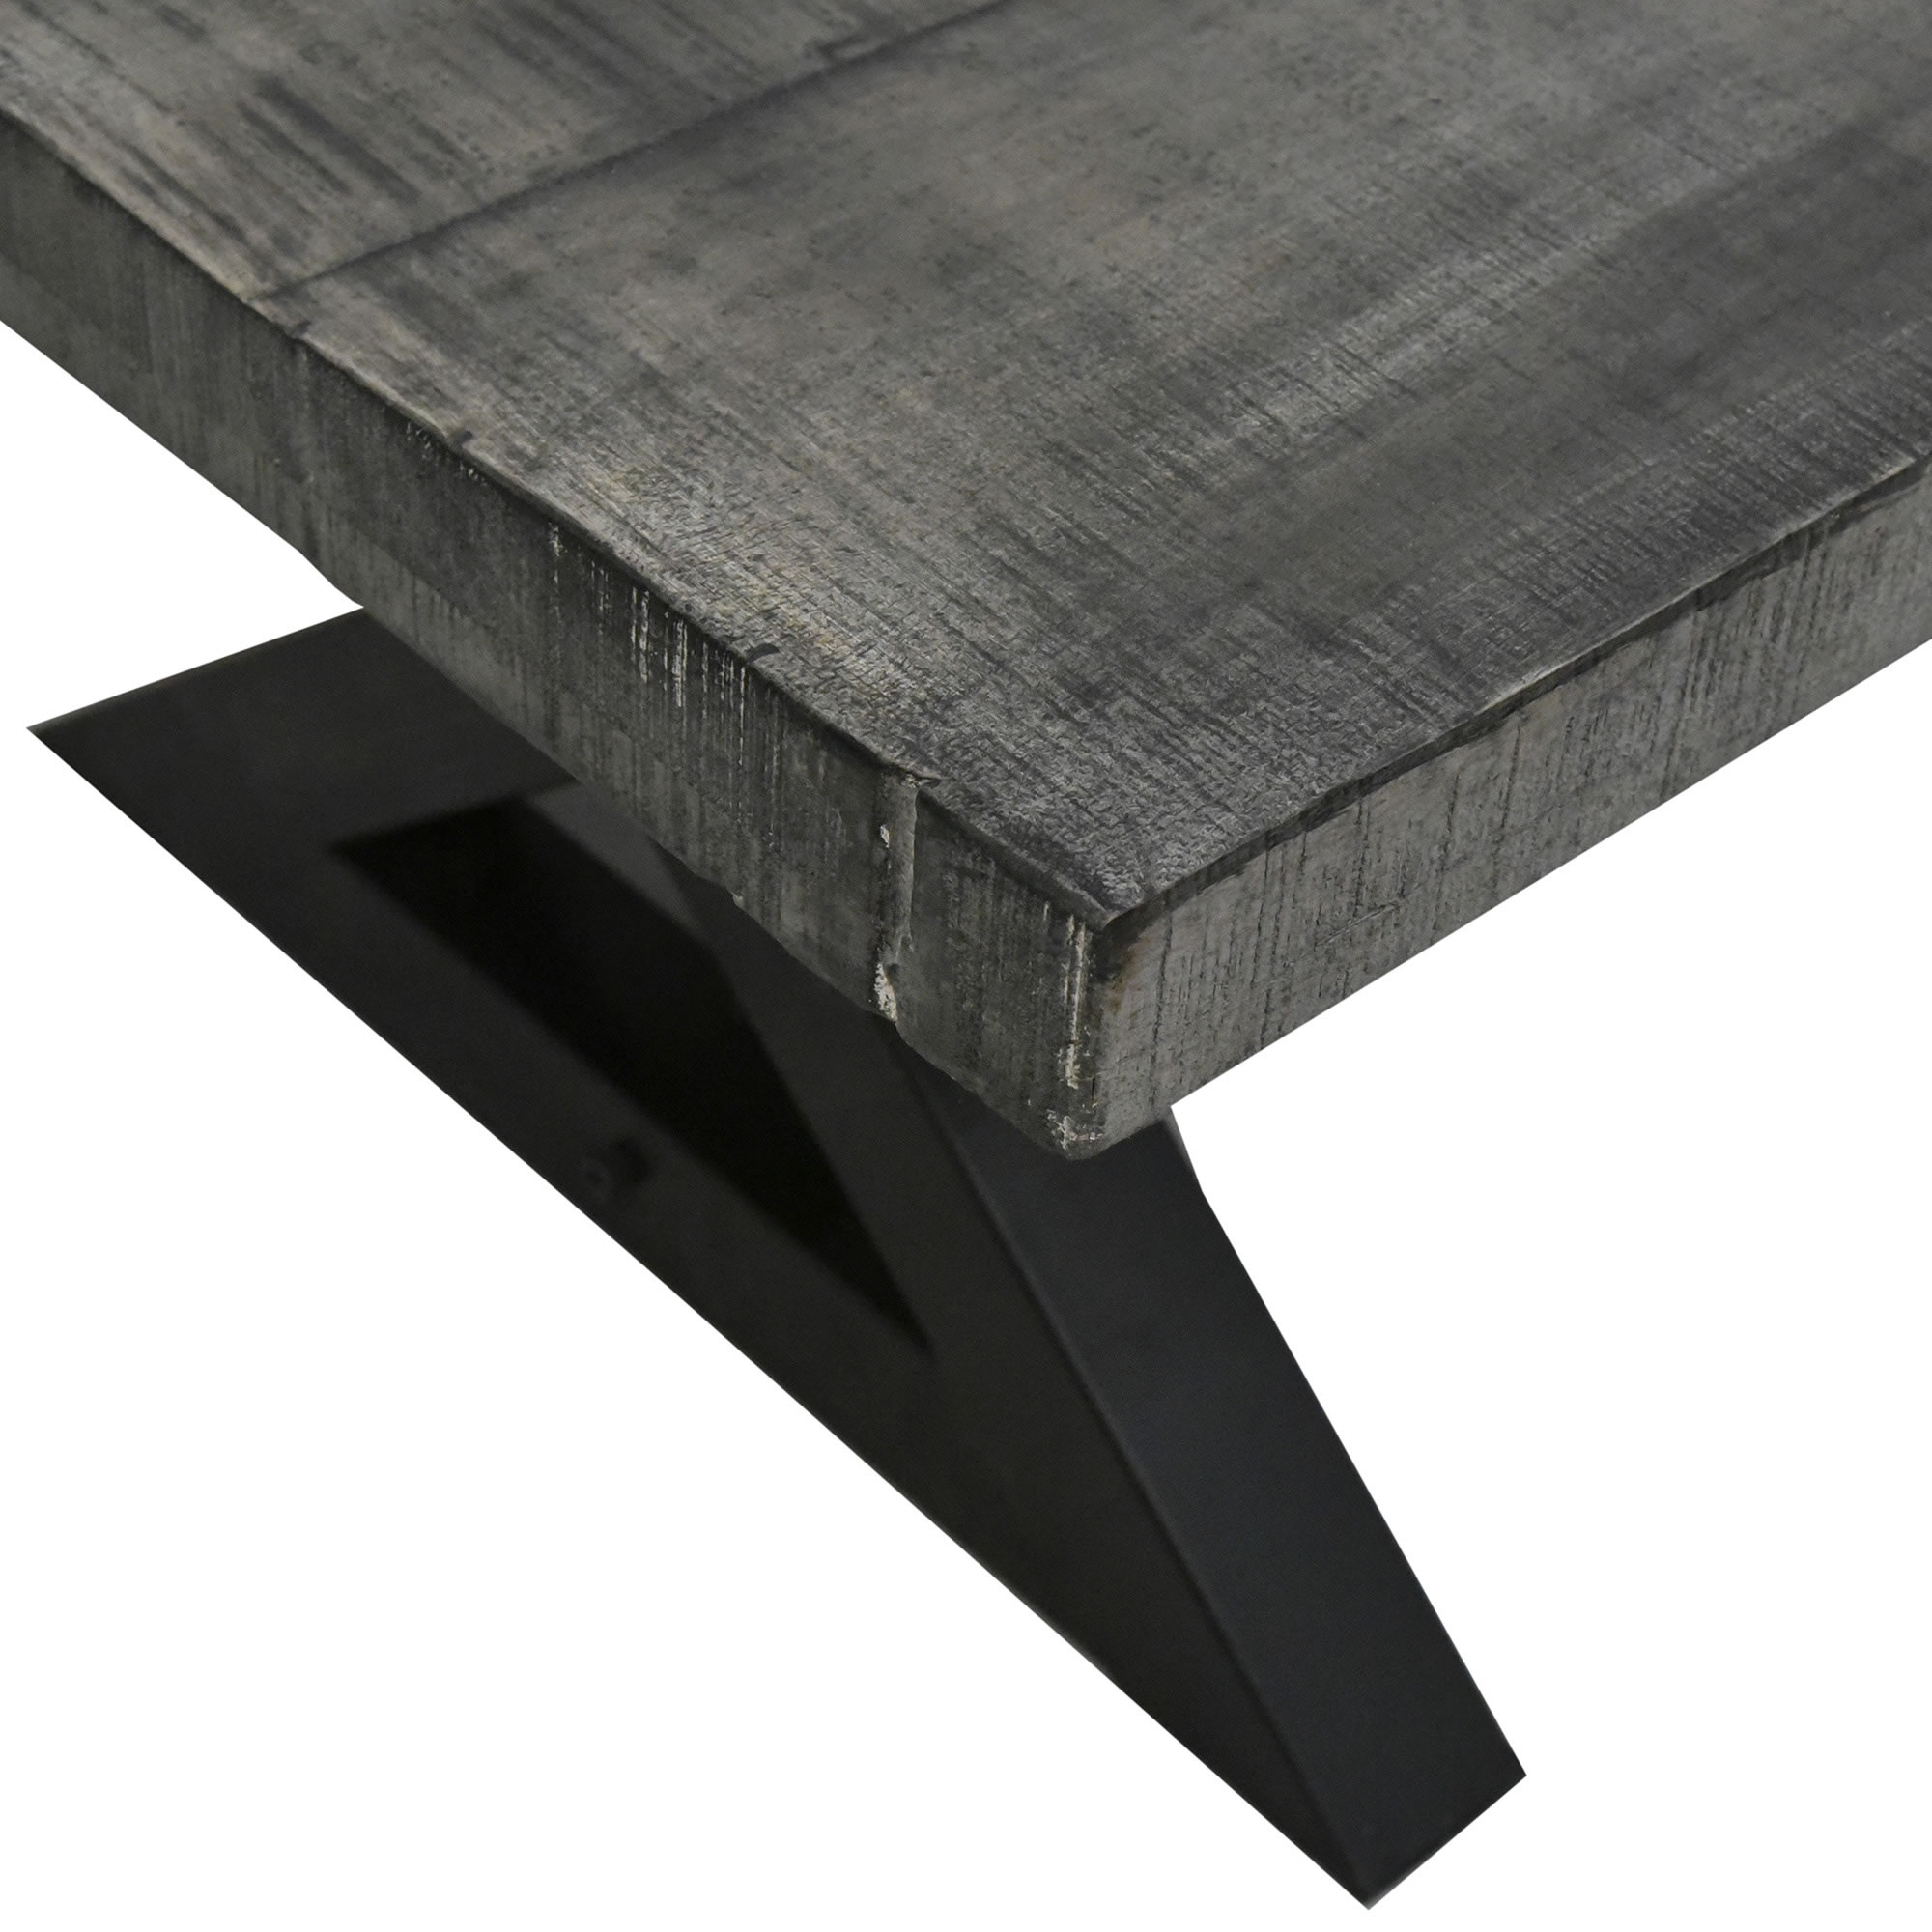 Nspire Zax Coffee Table Distressed Grey 301 147gy Modern in size 2000 X 2000